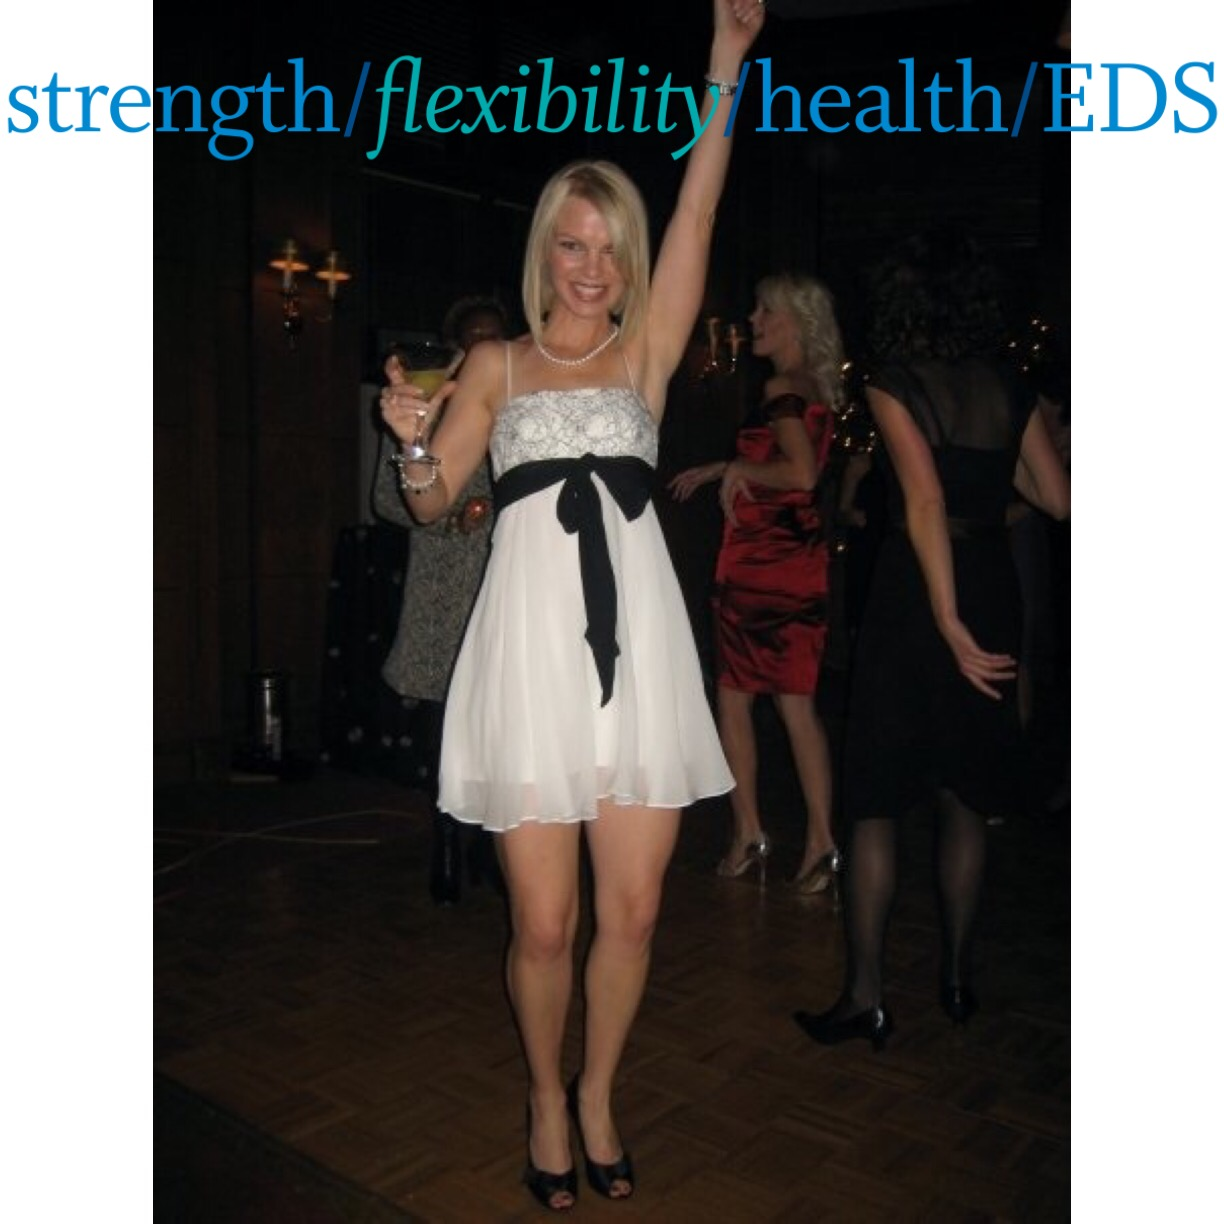 My first offical blog post – Finding strength & health, while being too flexibile and living with EDS